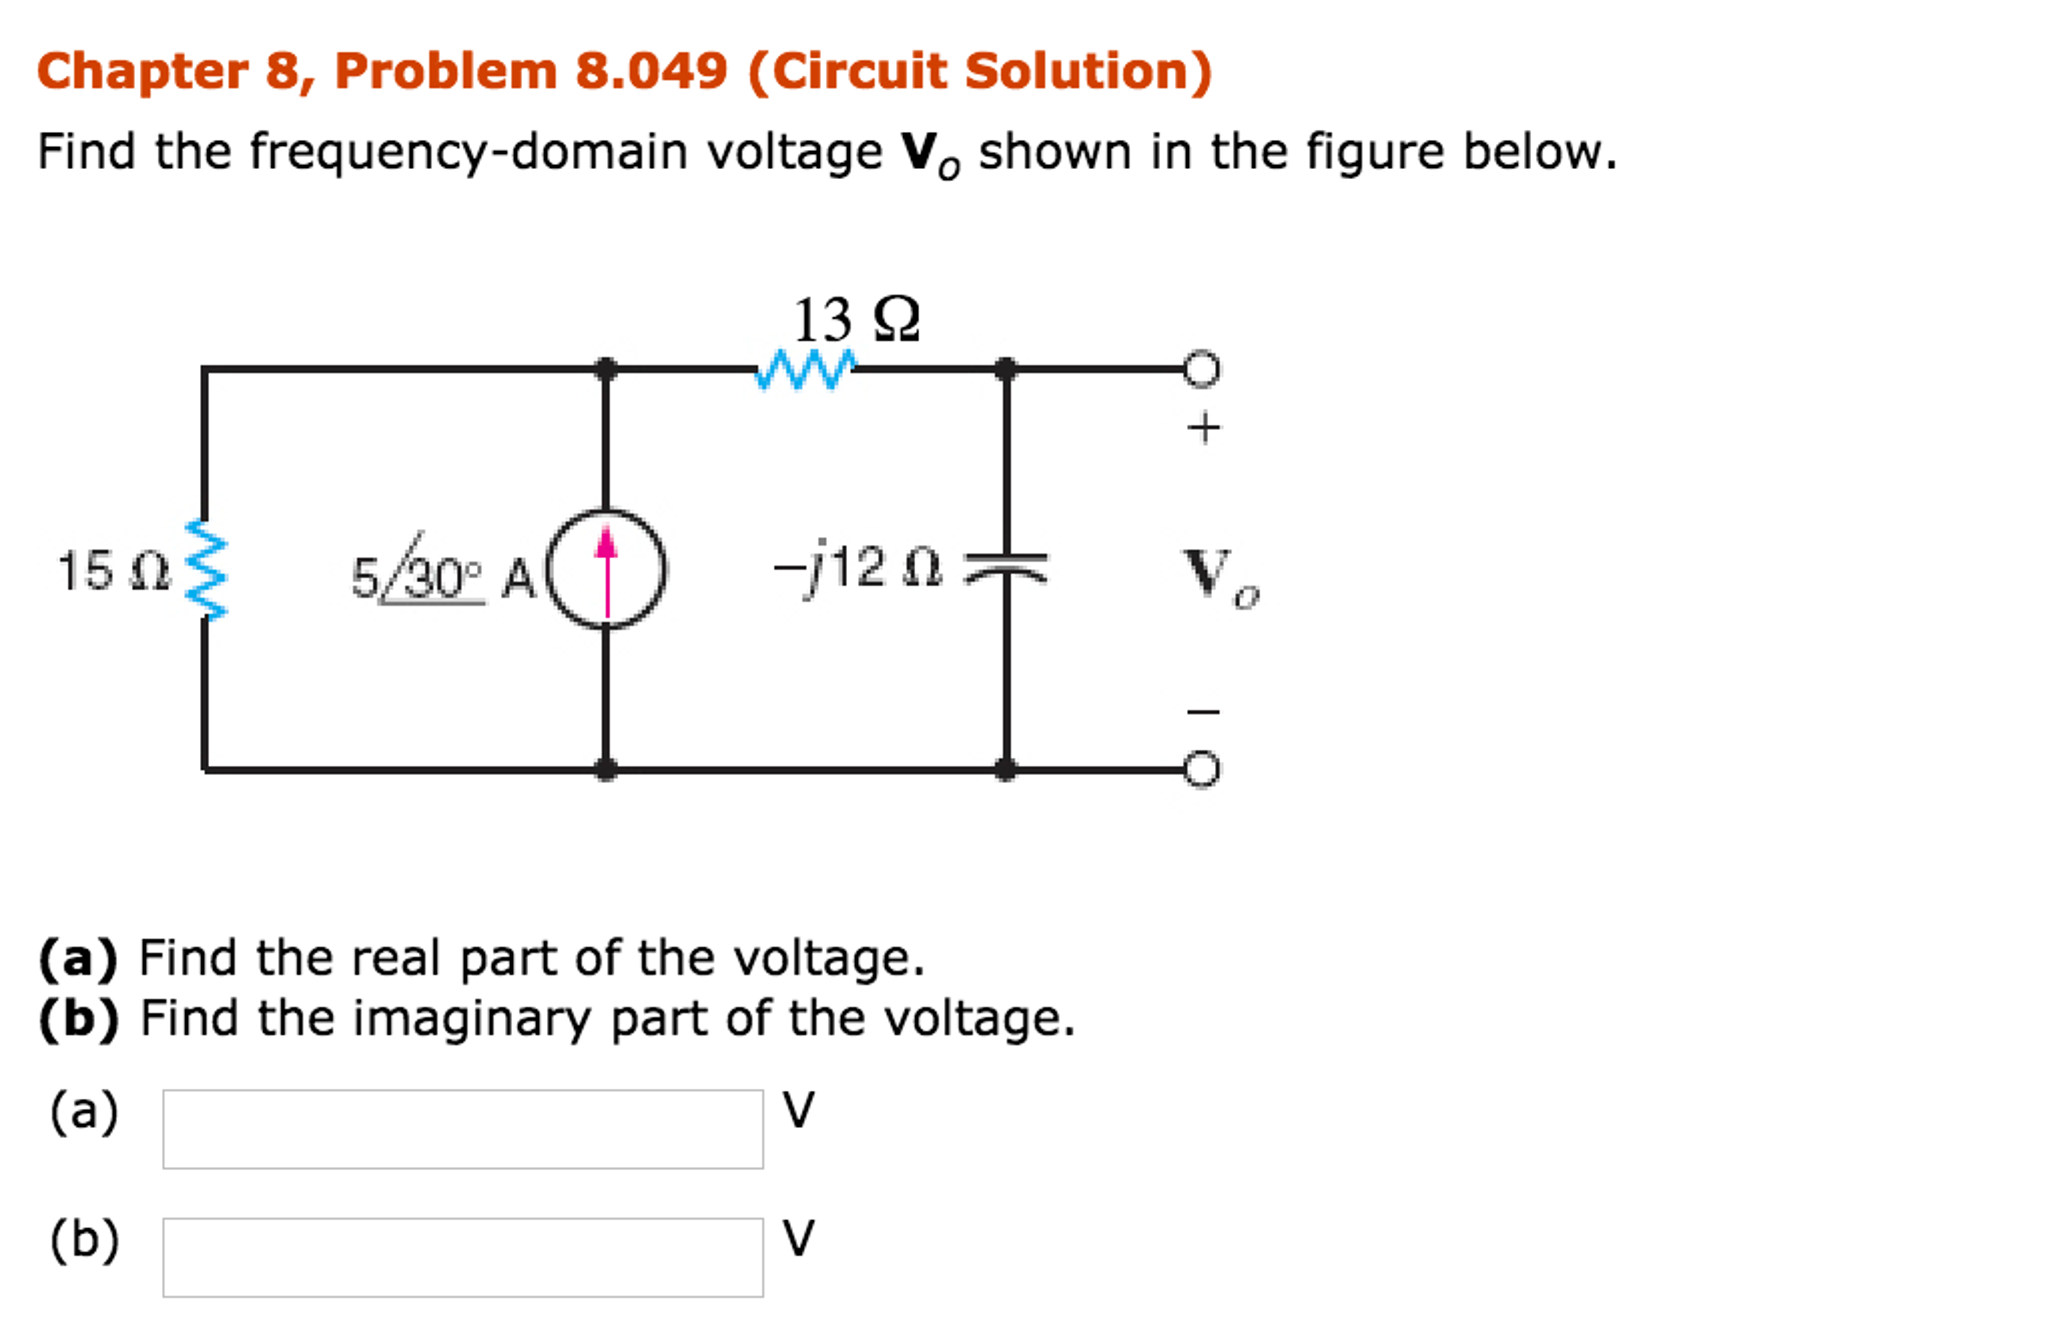 Electrical engineering archive november 20 2016 chegg chapter 8 problem 8012 find the impedance z shown in the figure below at a frequency of 400 hz 10 mh 2 n 10 ohm 10 hf t j fandeluxe Image collections